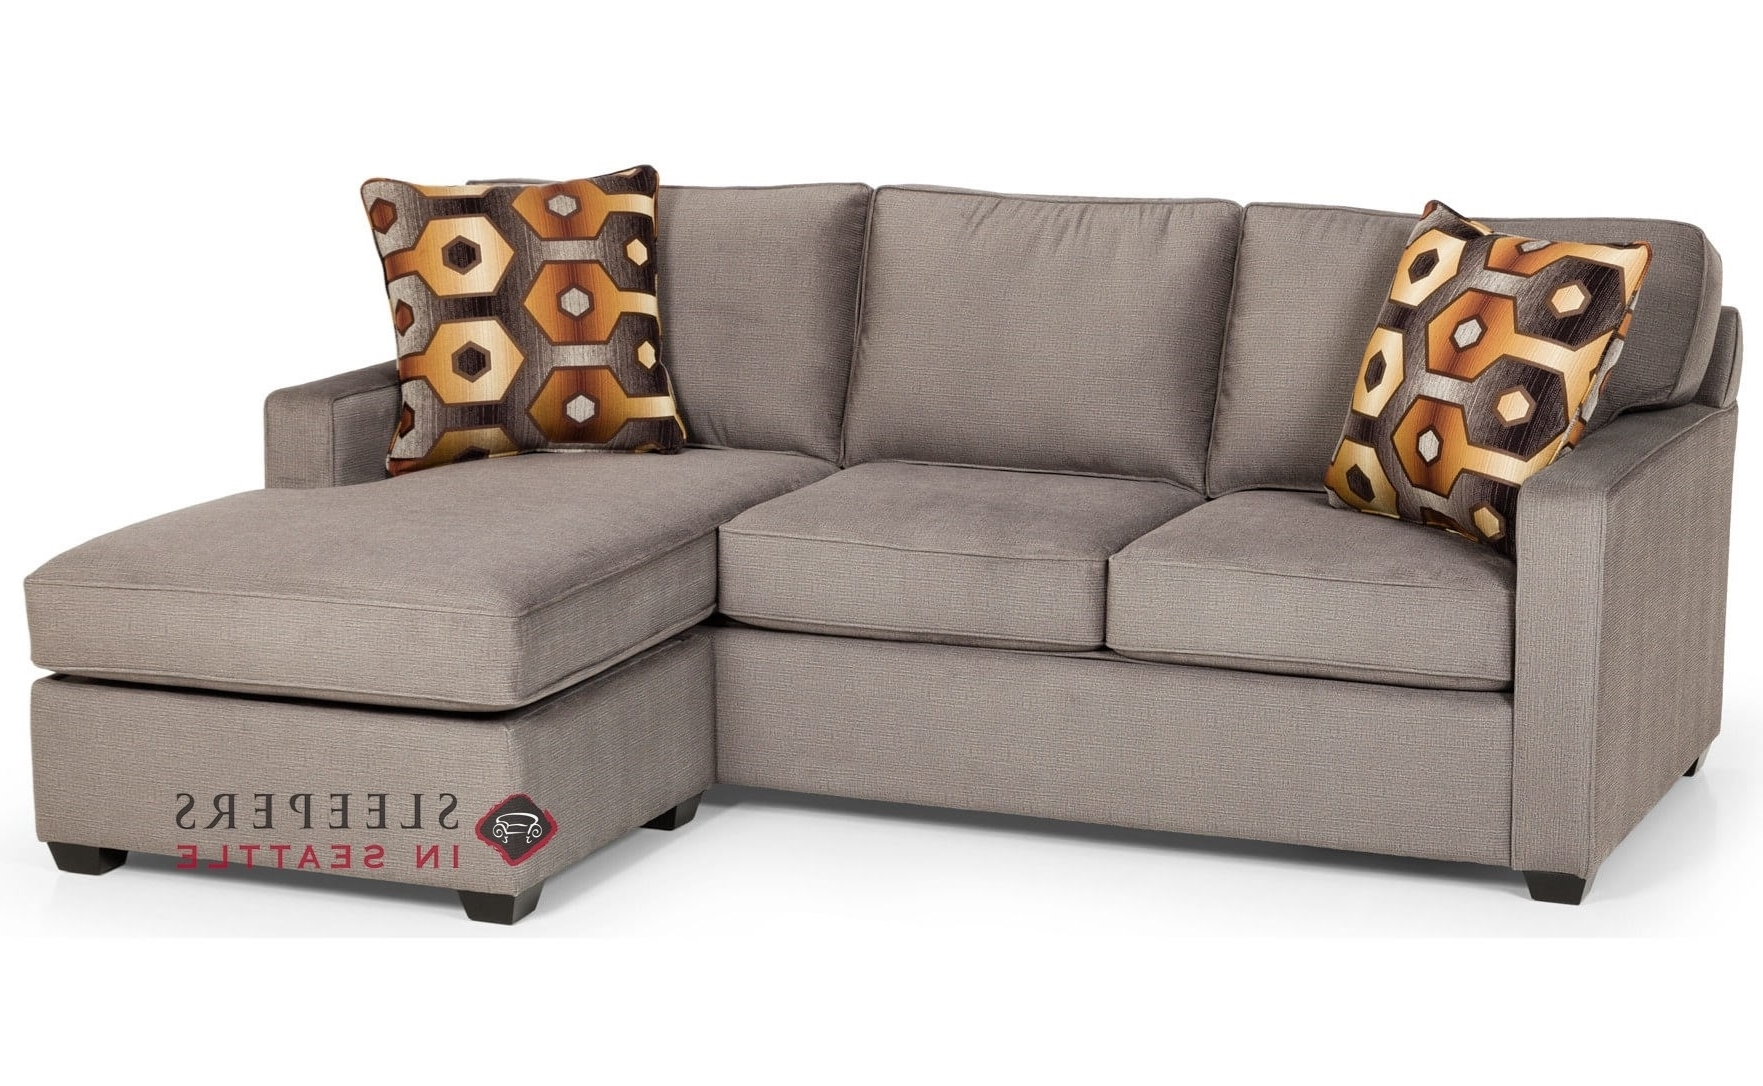 Customize And Personalize 403 Chaise Sectional Fabric Sofa Intended For Well Known Chaise Sleeper Sofas (View 4 of 15)